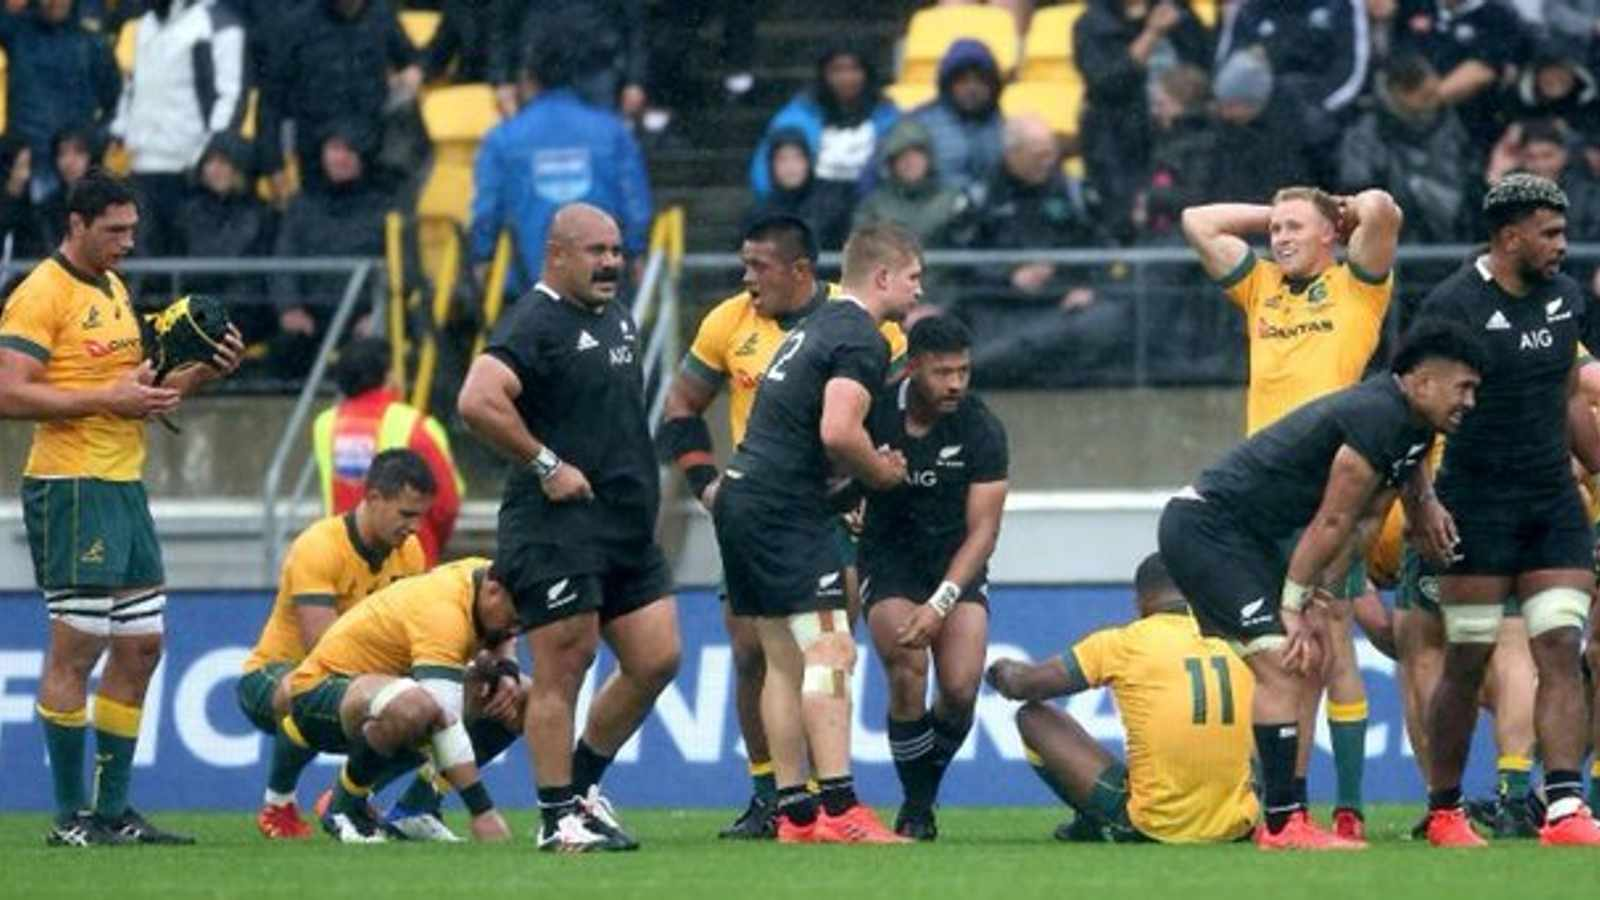 Once-feared All Blacks se dae is getel